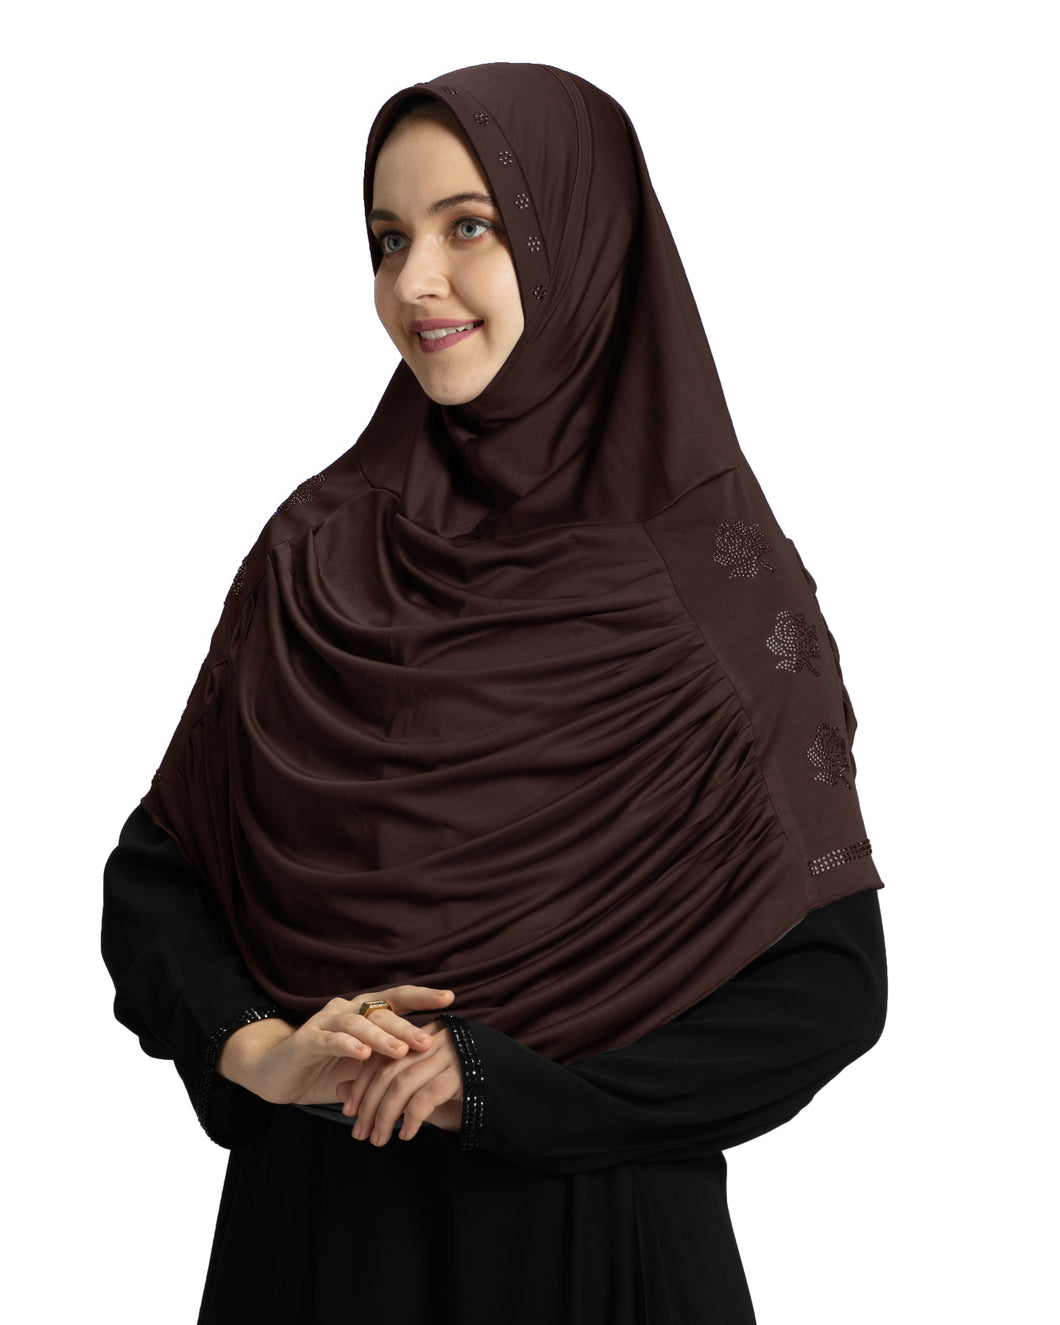 Mehar Hijab Modest Fashion Women's Hijab with Glittering Stone Design Stylish iCRA Feel Good Fabric Aasimah Hijab Cocco Media 1 of 1